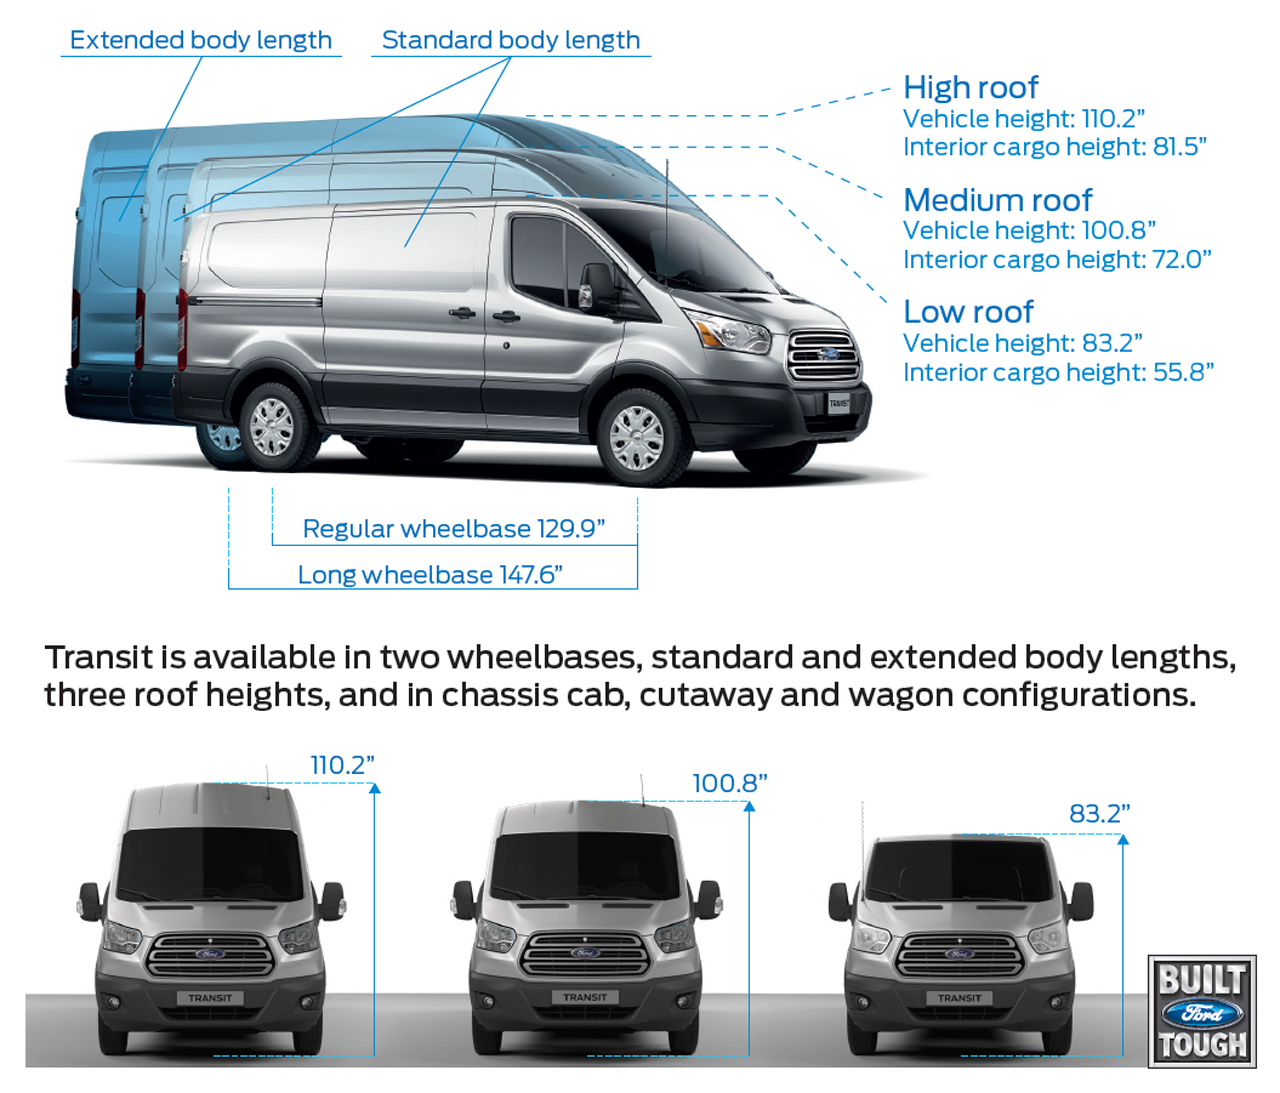 Purchase Used 2011 Ford Transit Connect Xlt Cargo Van With: Dimensions Ford Transit. Ford Transit Connect Dimensions